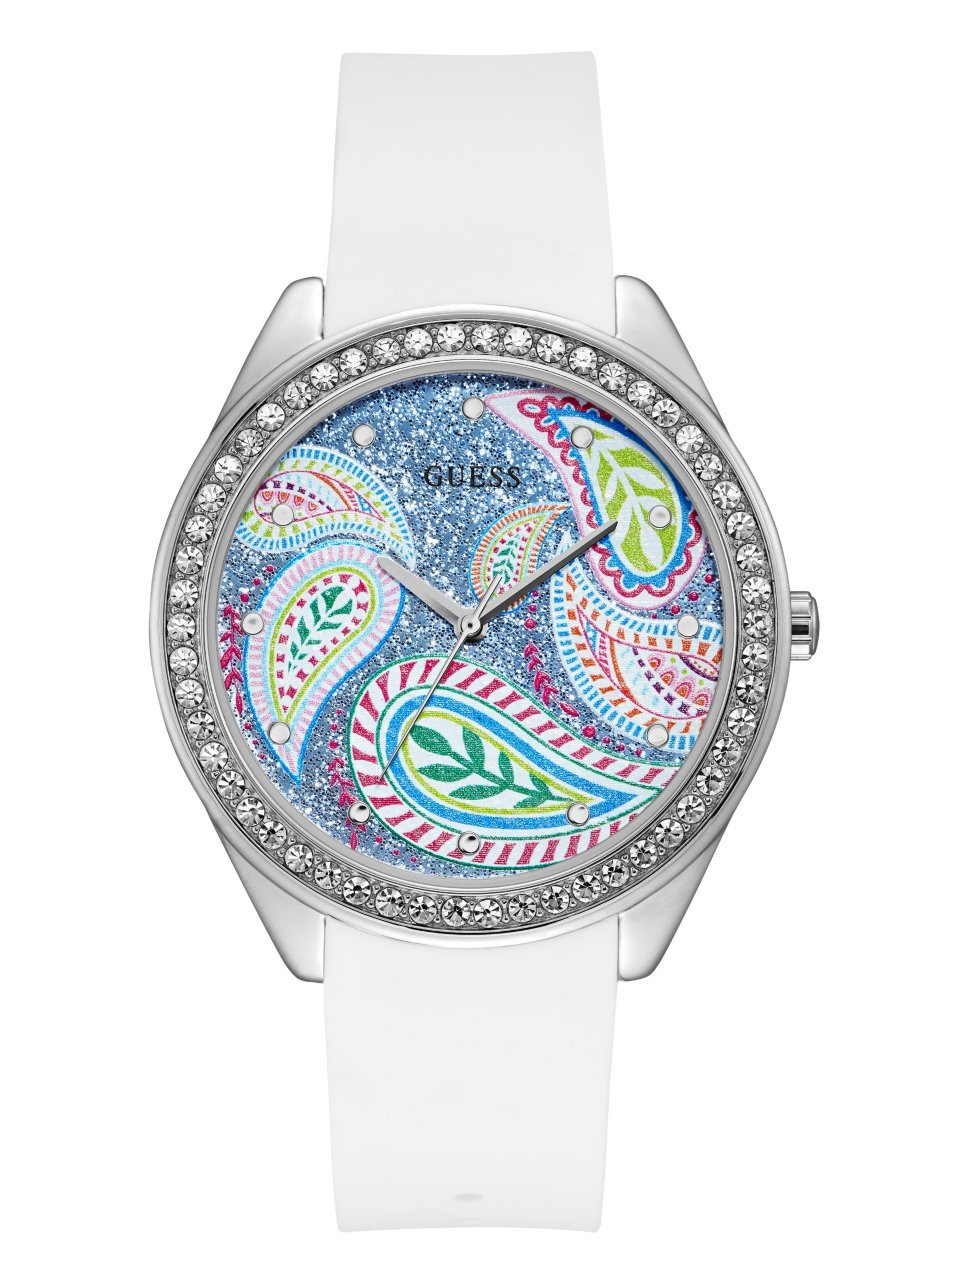 Guess Women's Stainless Steel Silicone Paisley Crystal Accented Watch, Color Paisley/White (Model: U1066L1)